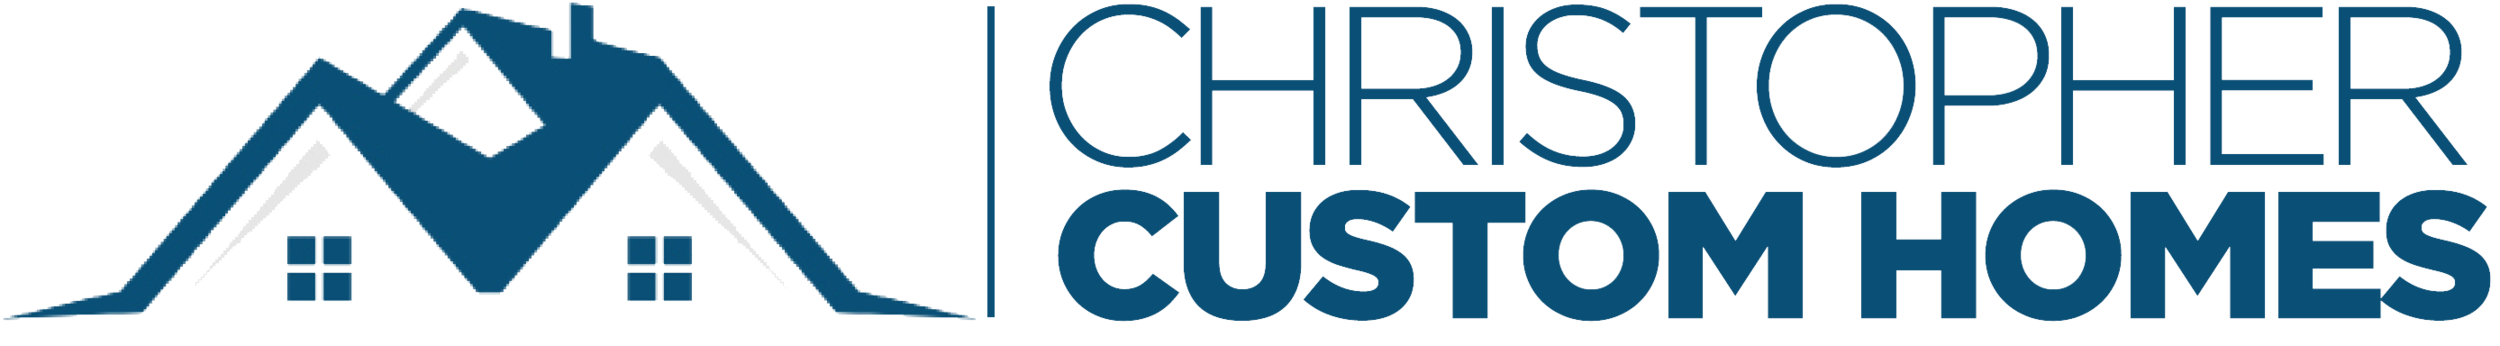 christopher_custom_homes_logo.jpg